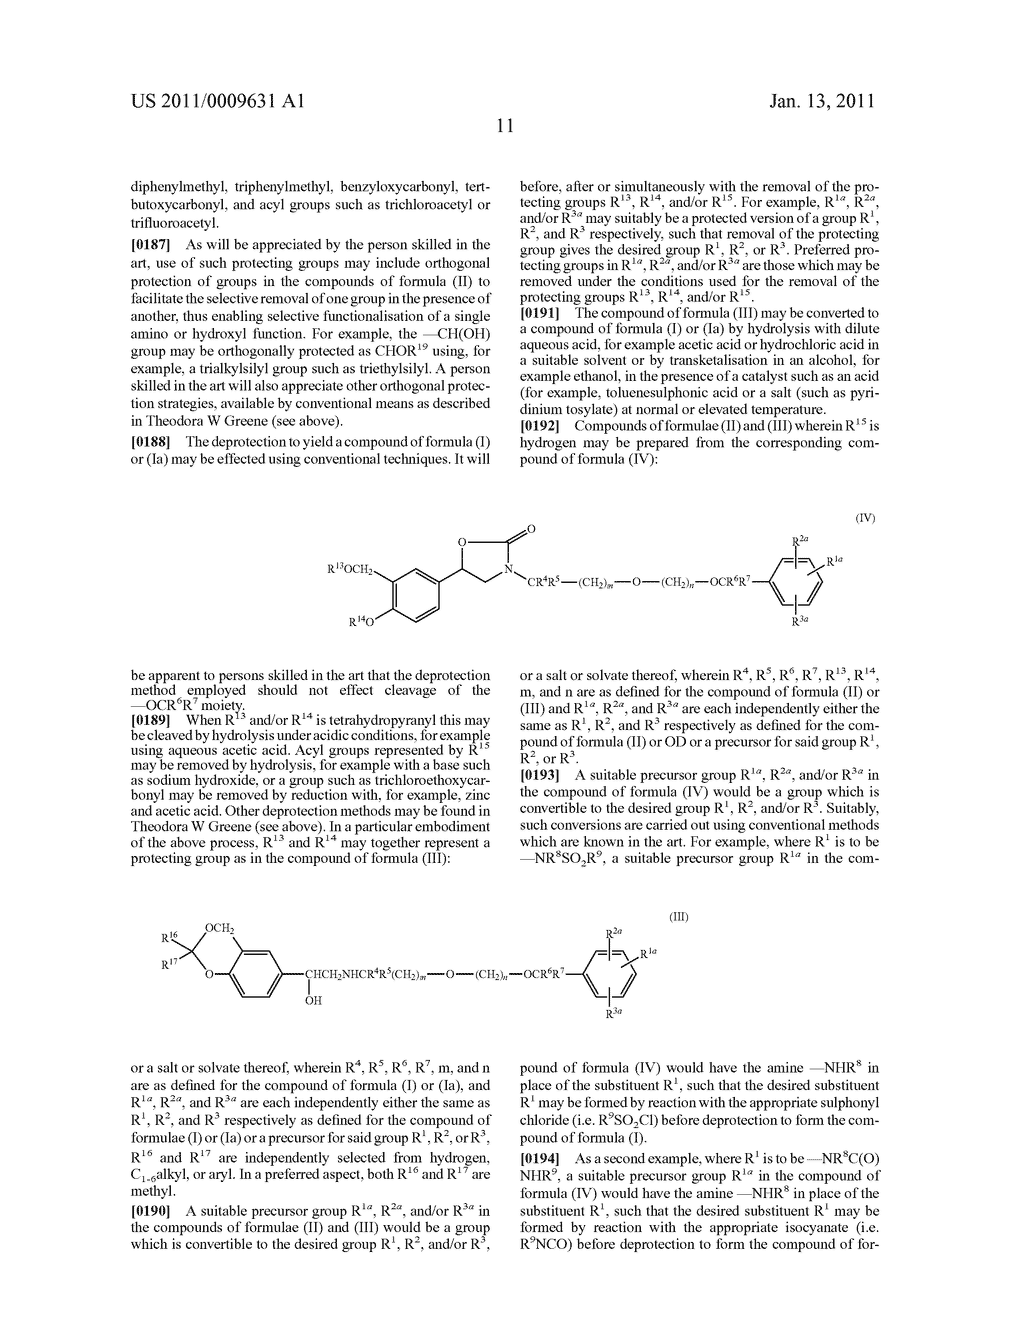 Phenethanolamine Derivatives for Treatment of Respiratory Diseases - diagram, schematic, and image 14